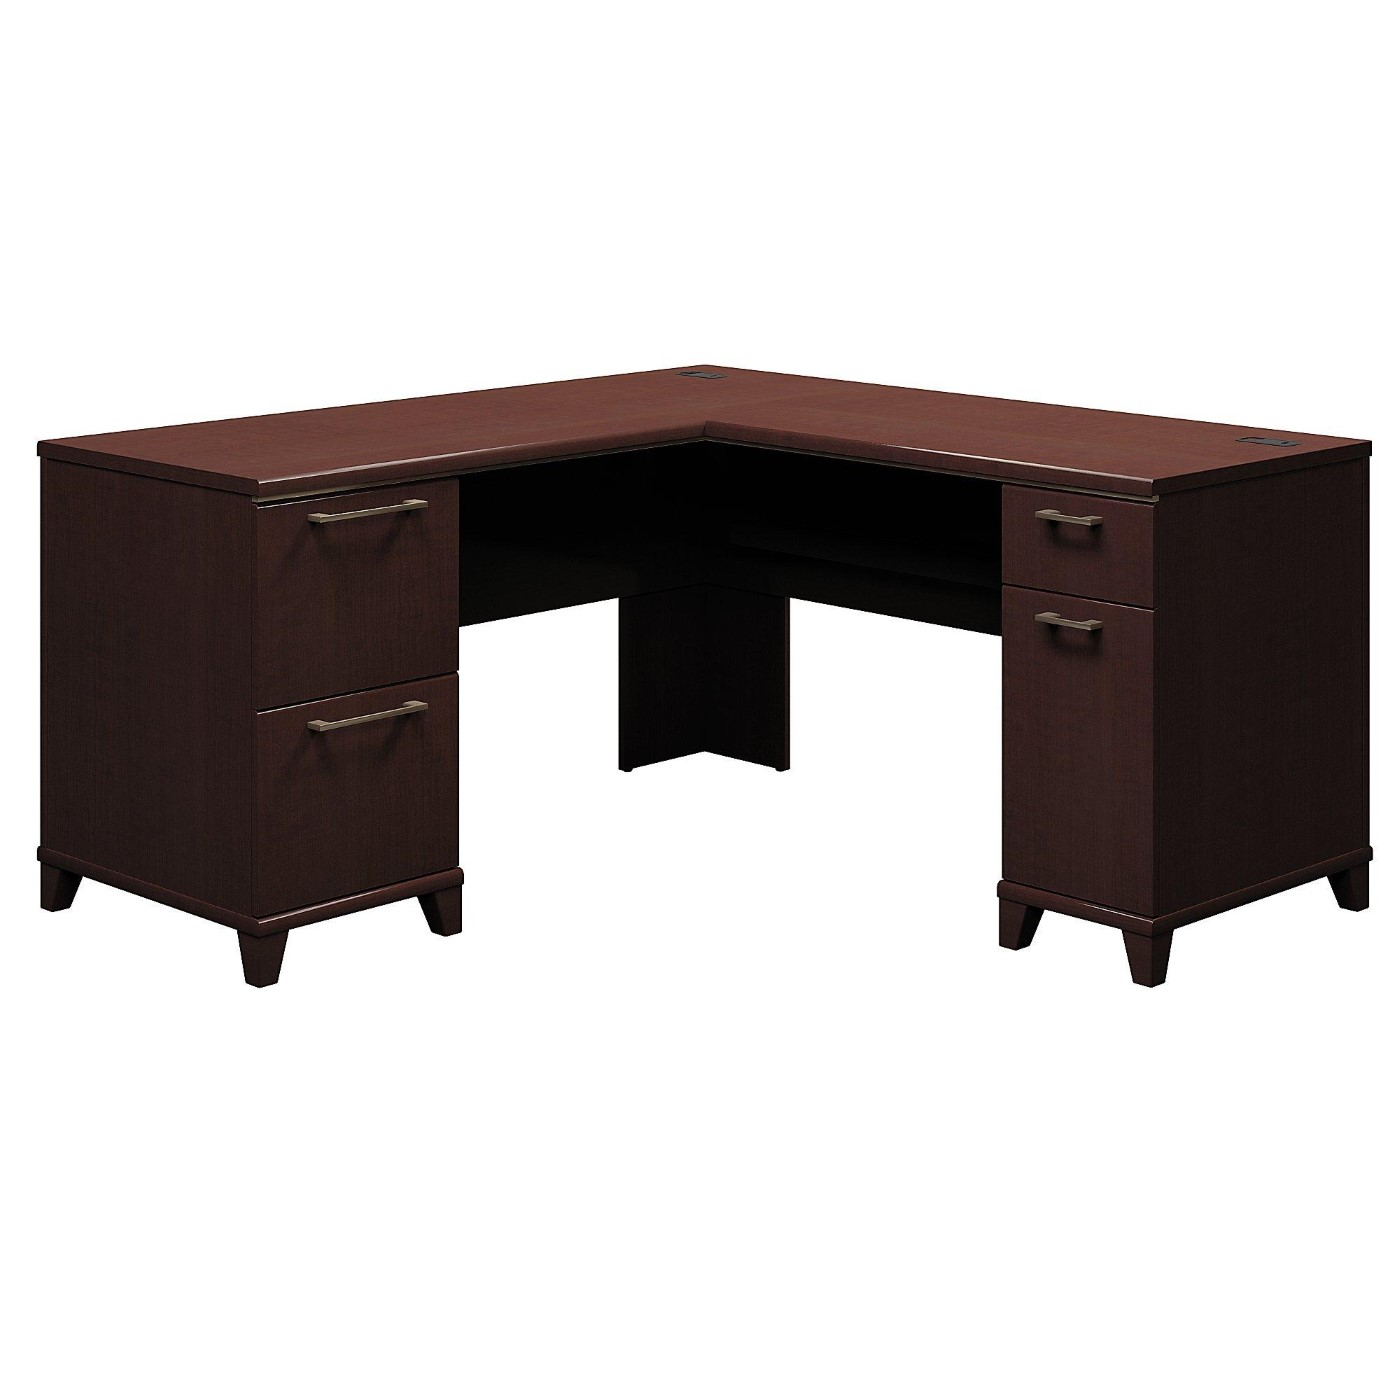 <font color=#c60><b>BUSH BUSINESS FURNITURE ENTERPRISE 60W X 60D L SHAPED DESK. FREE SHIPPING</font></b>